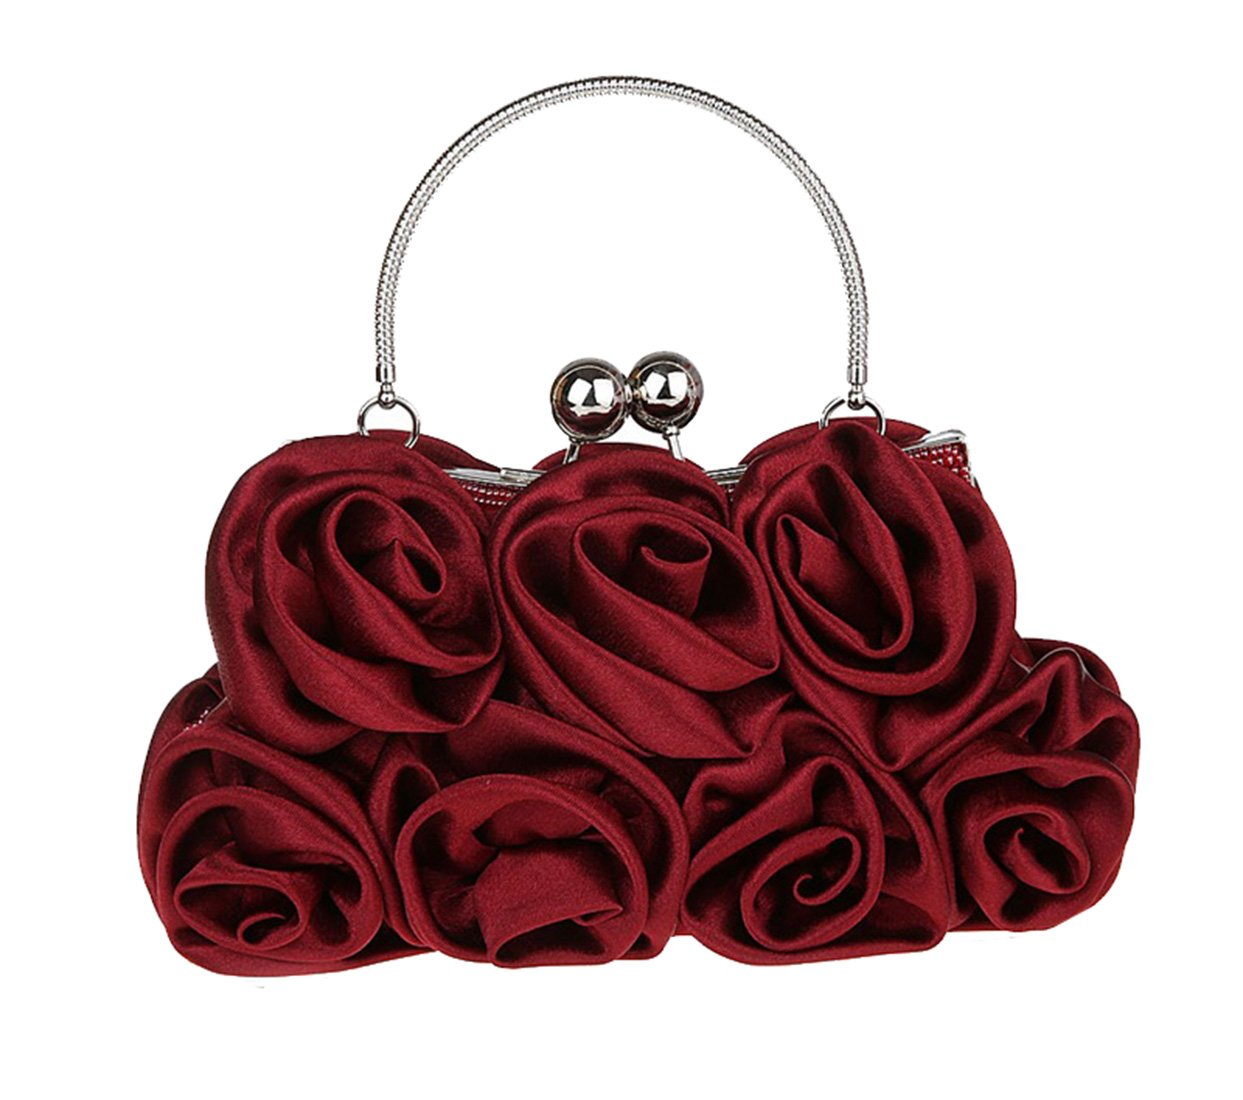 Flower Design Satin Clutch Handbag Evening Wedding Party Handheld Purse  Pouch: Amazon.co.uk: Luggage